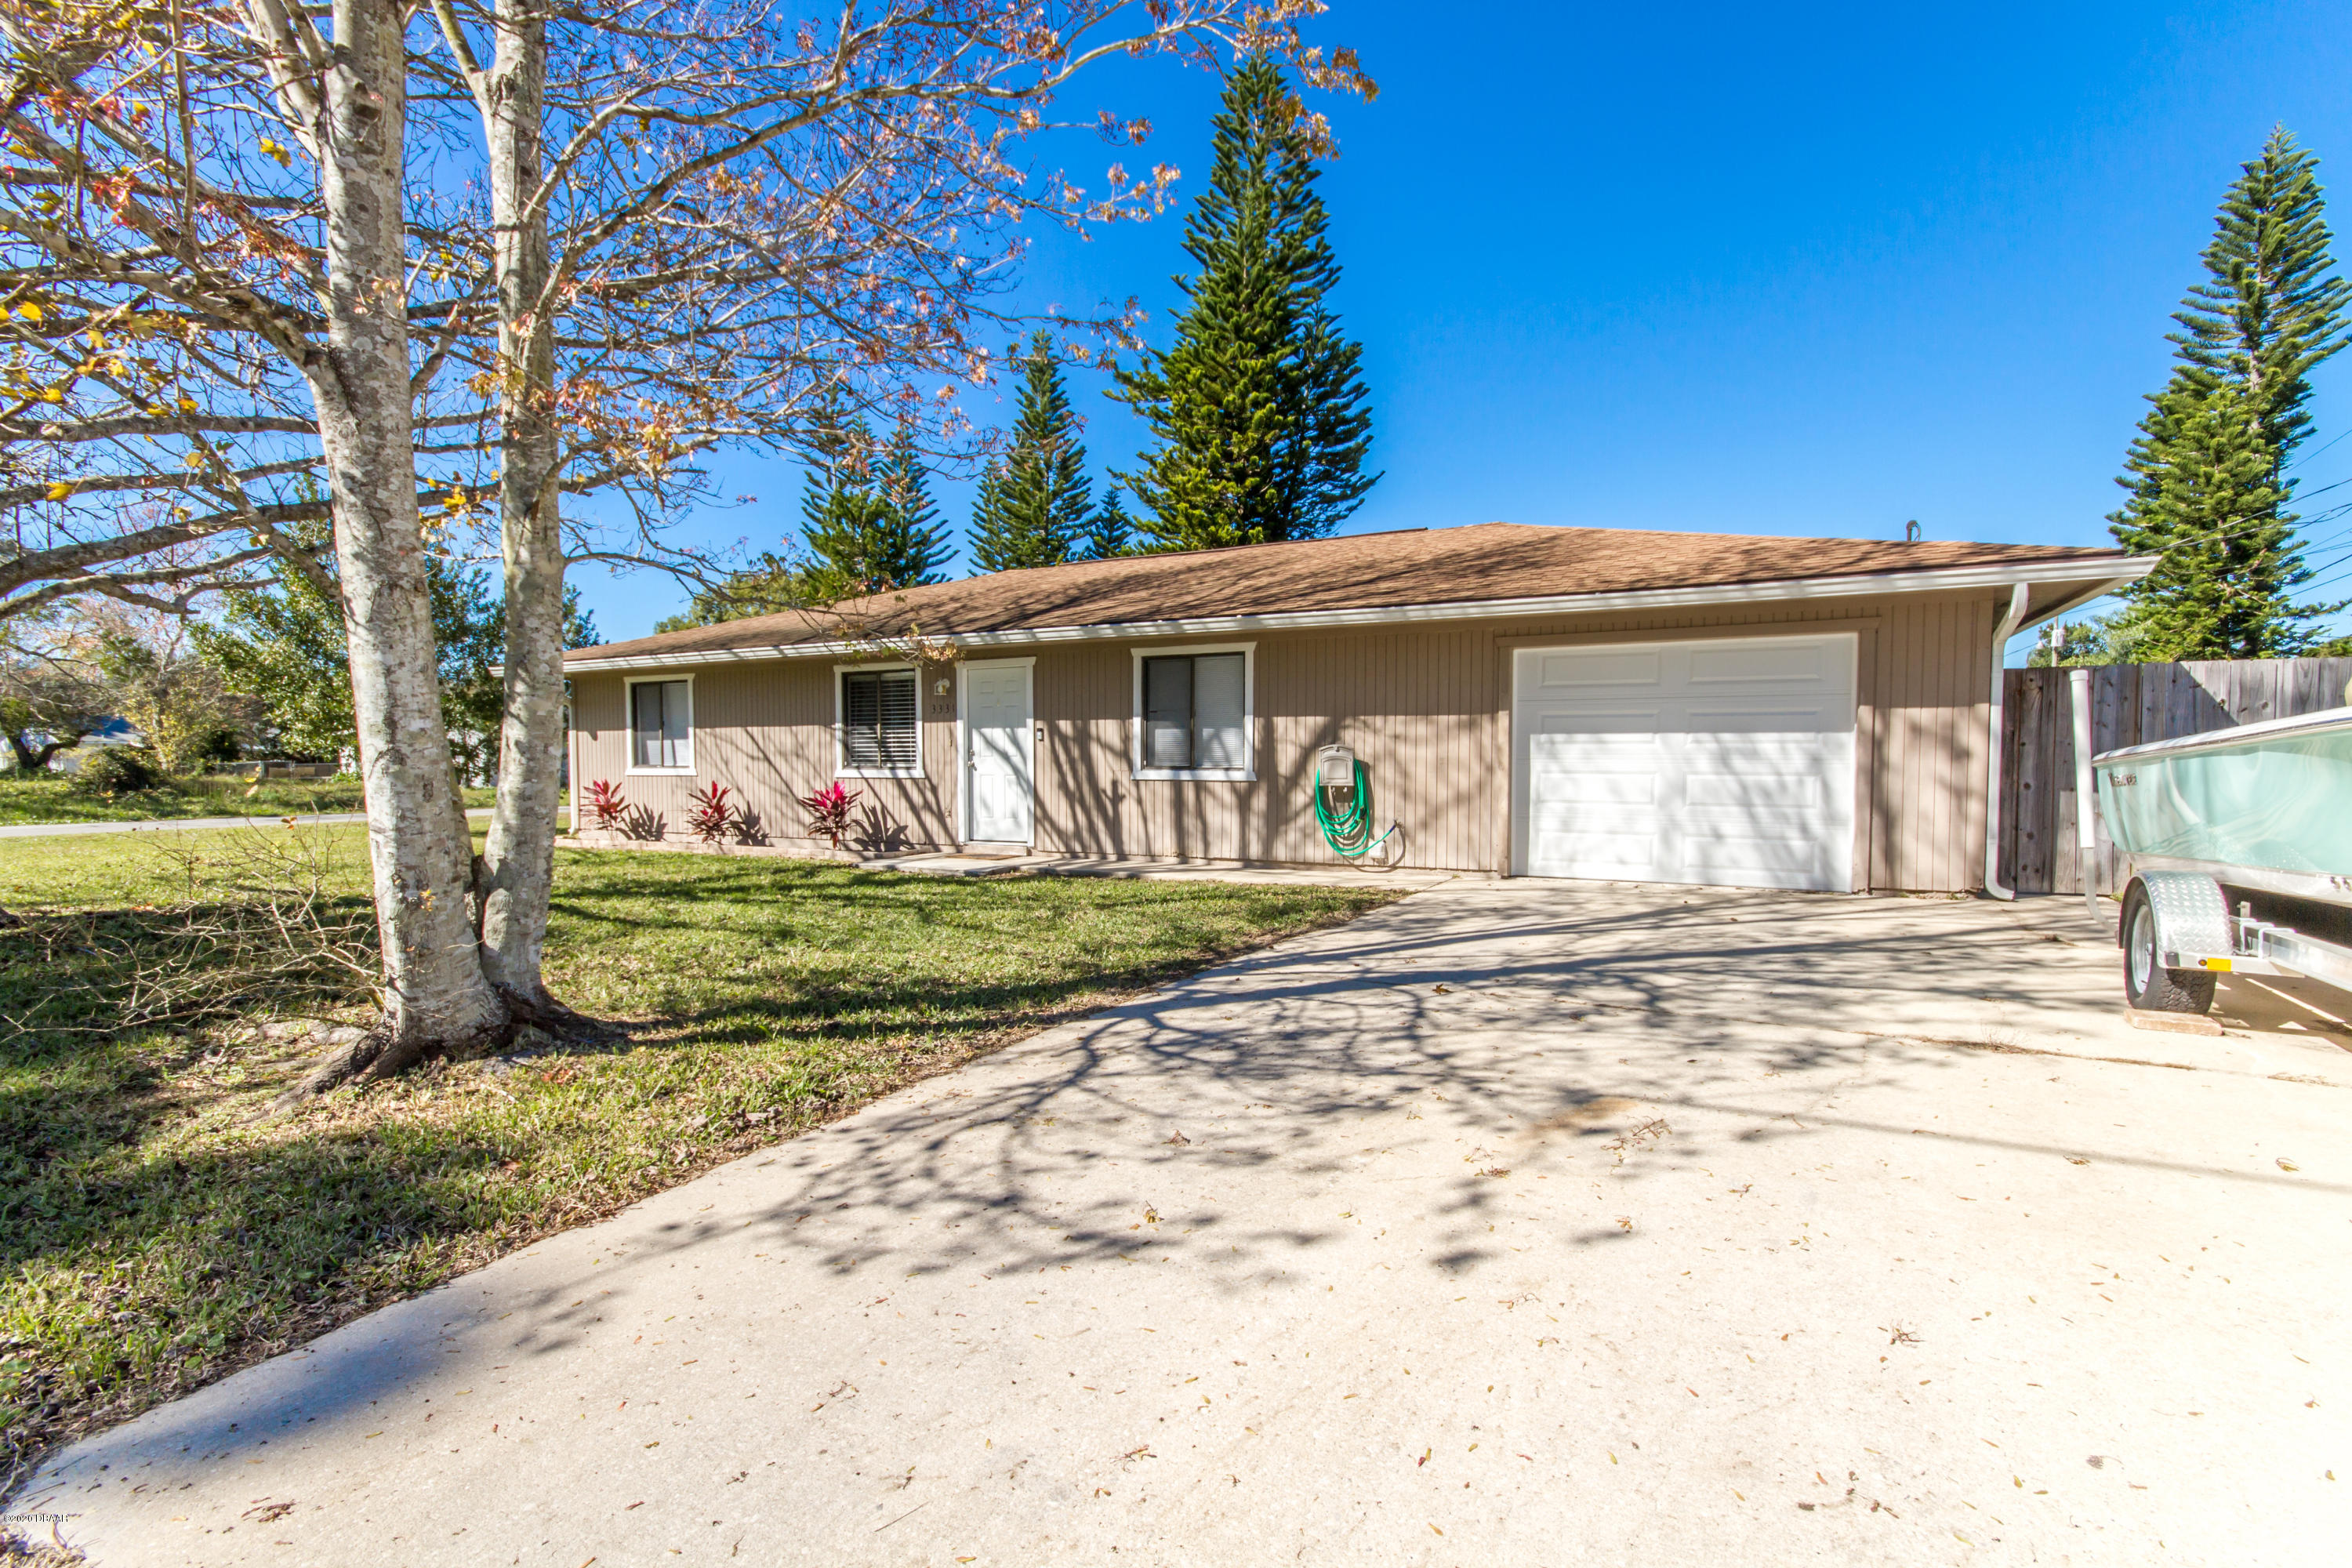 3331 Willow Oak Edgewater - 1